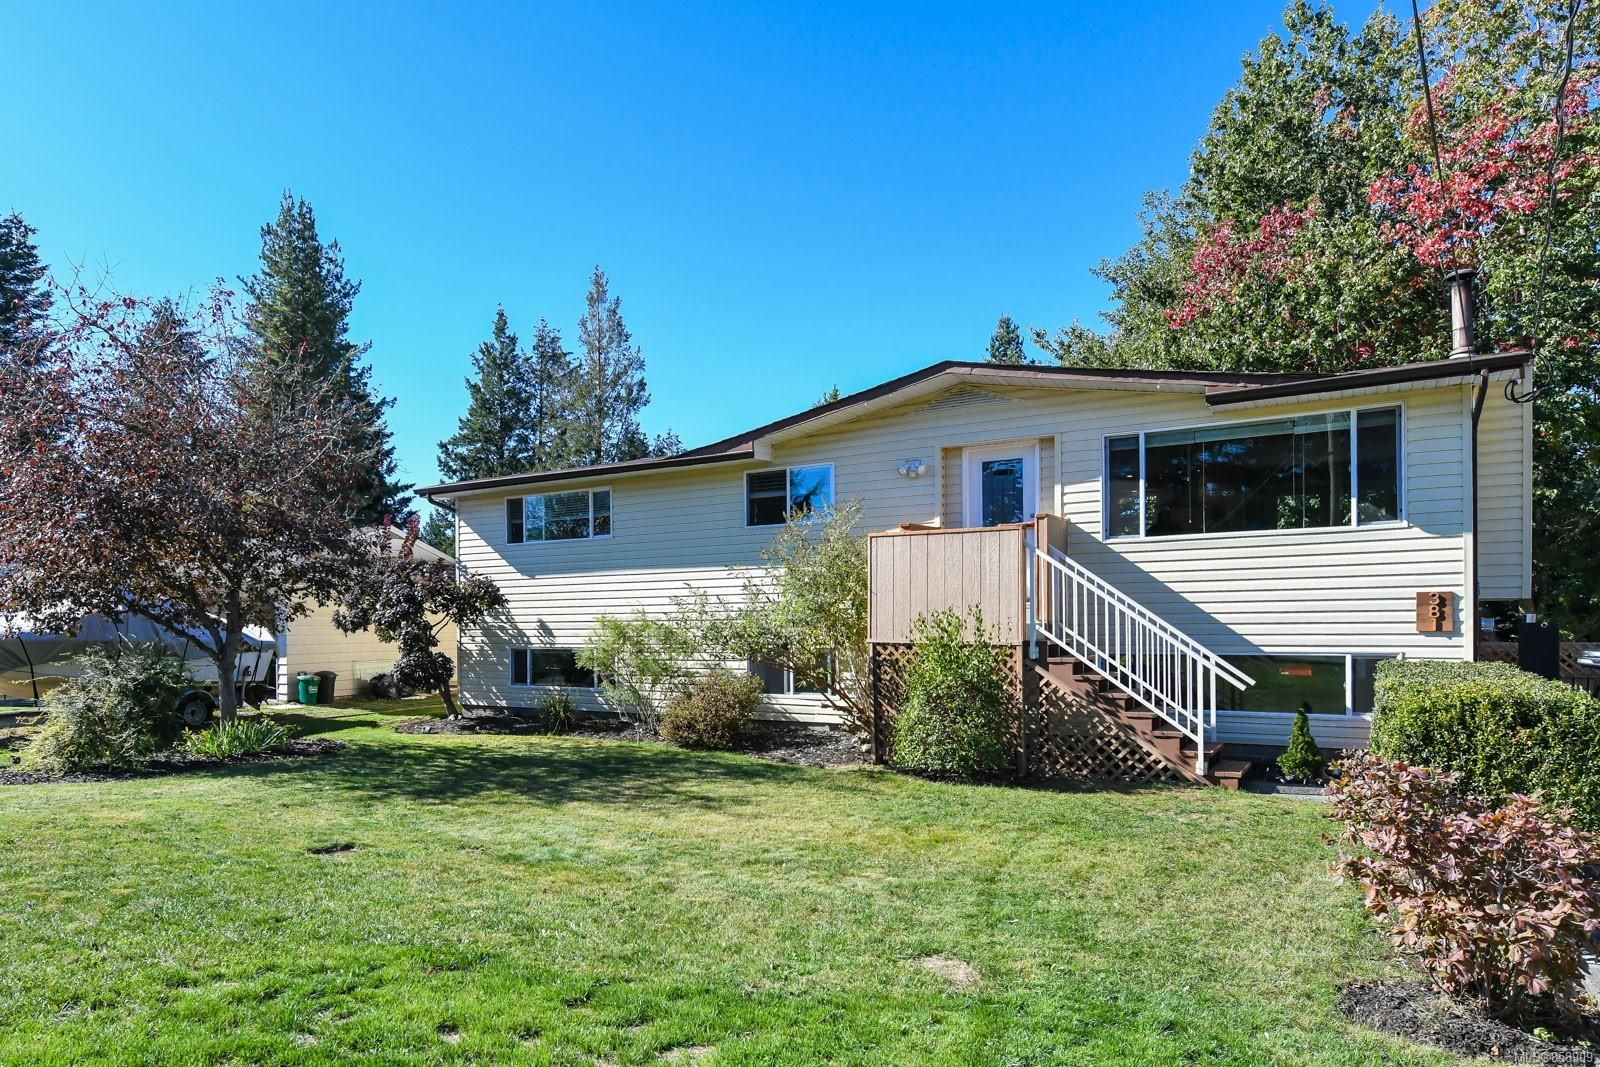 Main Photo: 381 Denman St in : CV Comox (Town of) House for sale (Comox Valley)  : MLS®# 858909